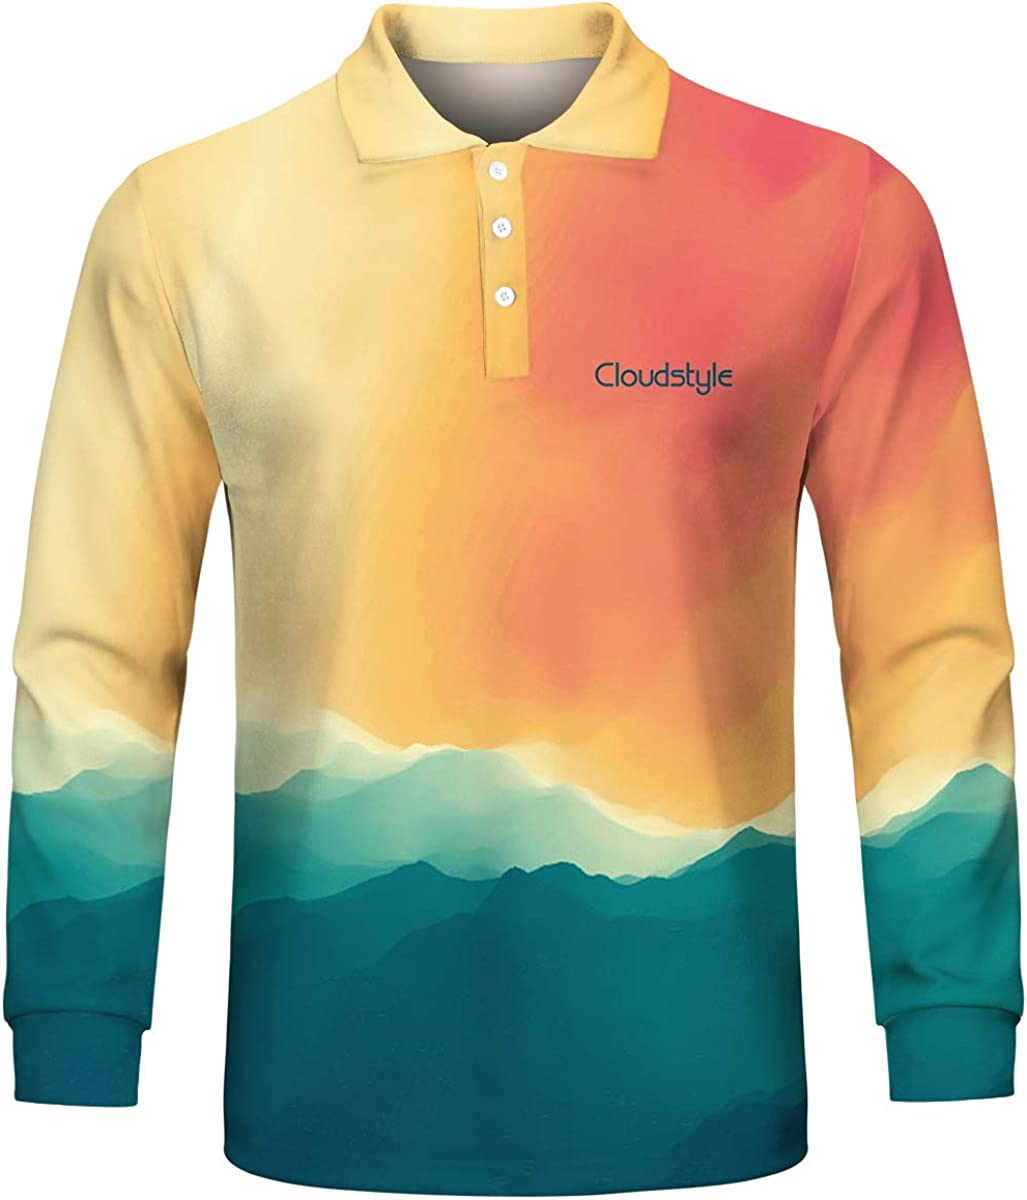 Mens 3D Fashion Polo Shirts Novelty Gradient Contrast Color Tee Top